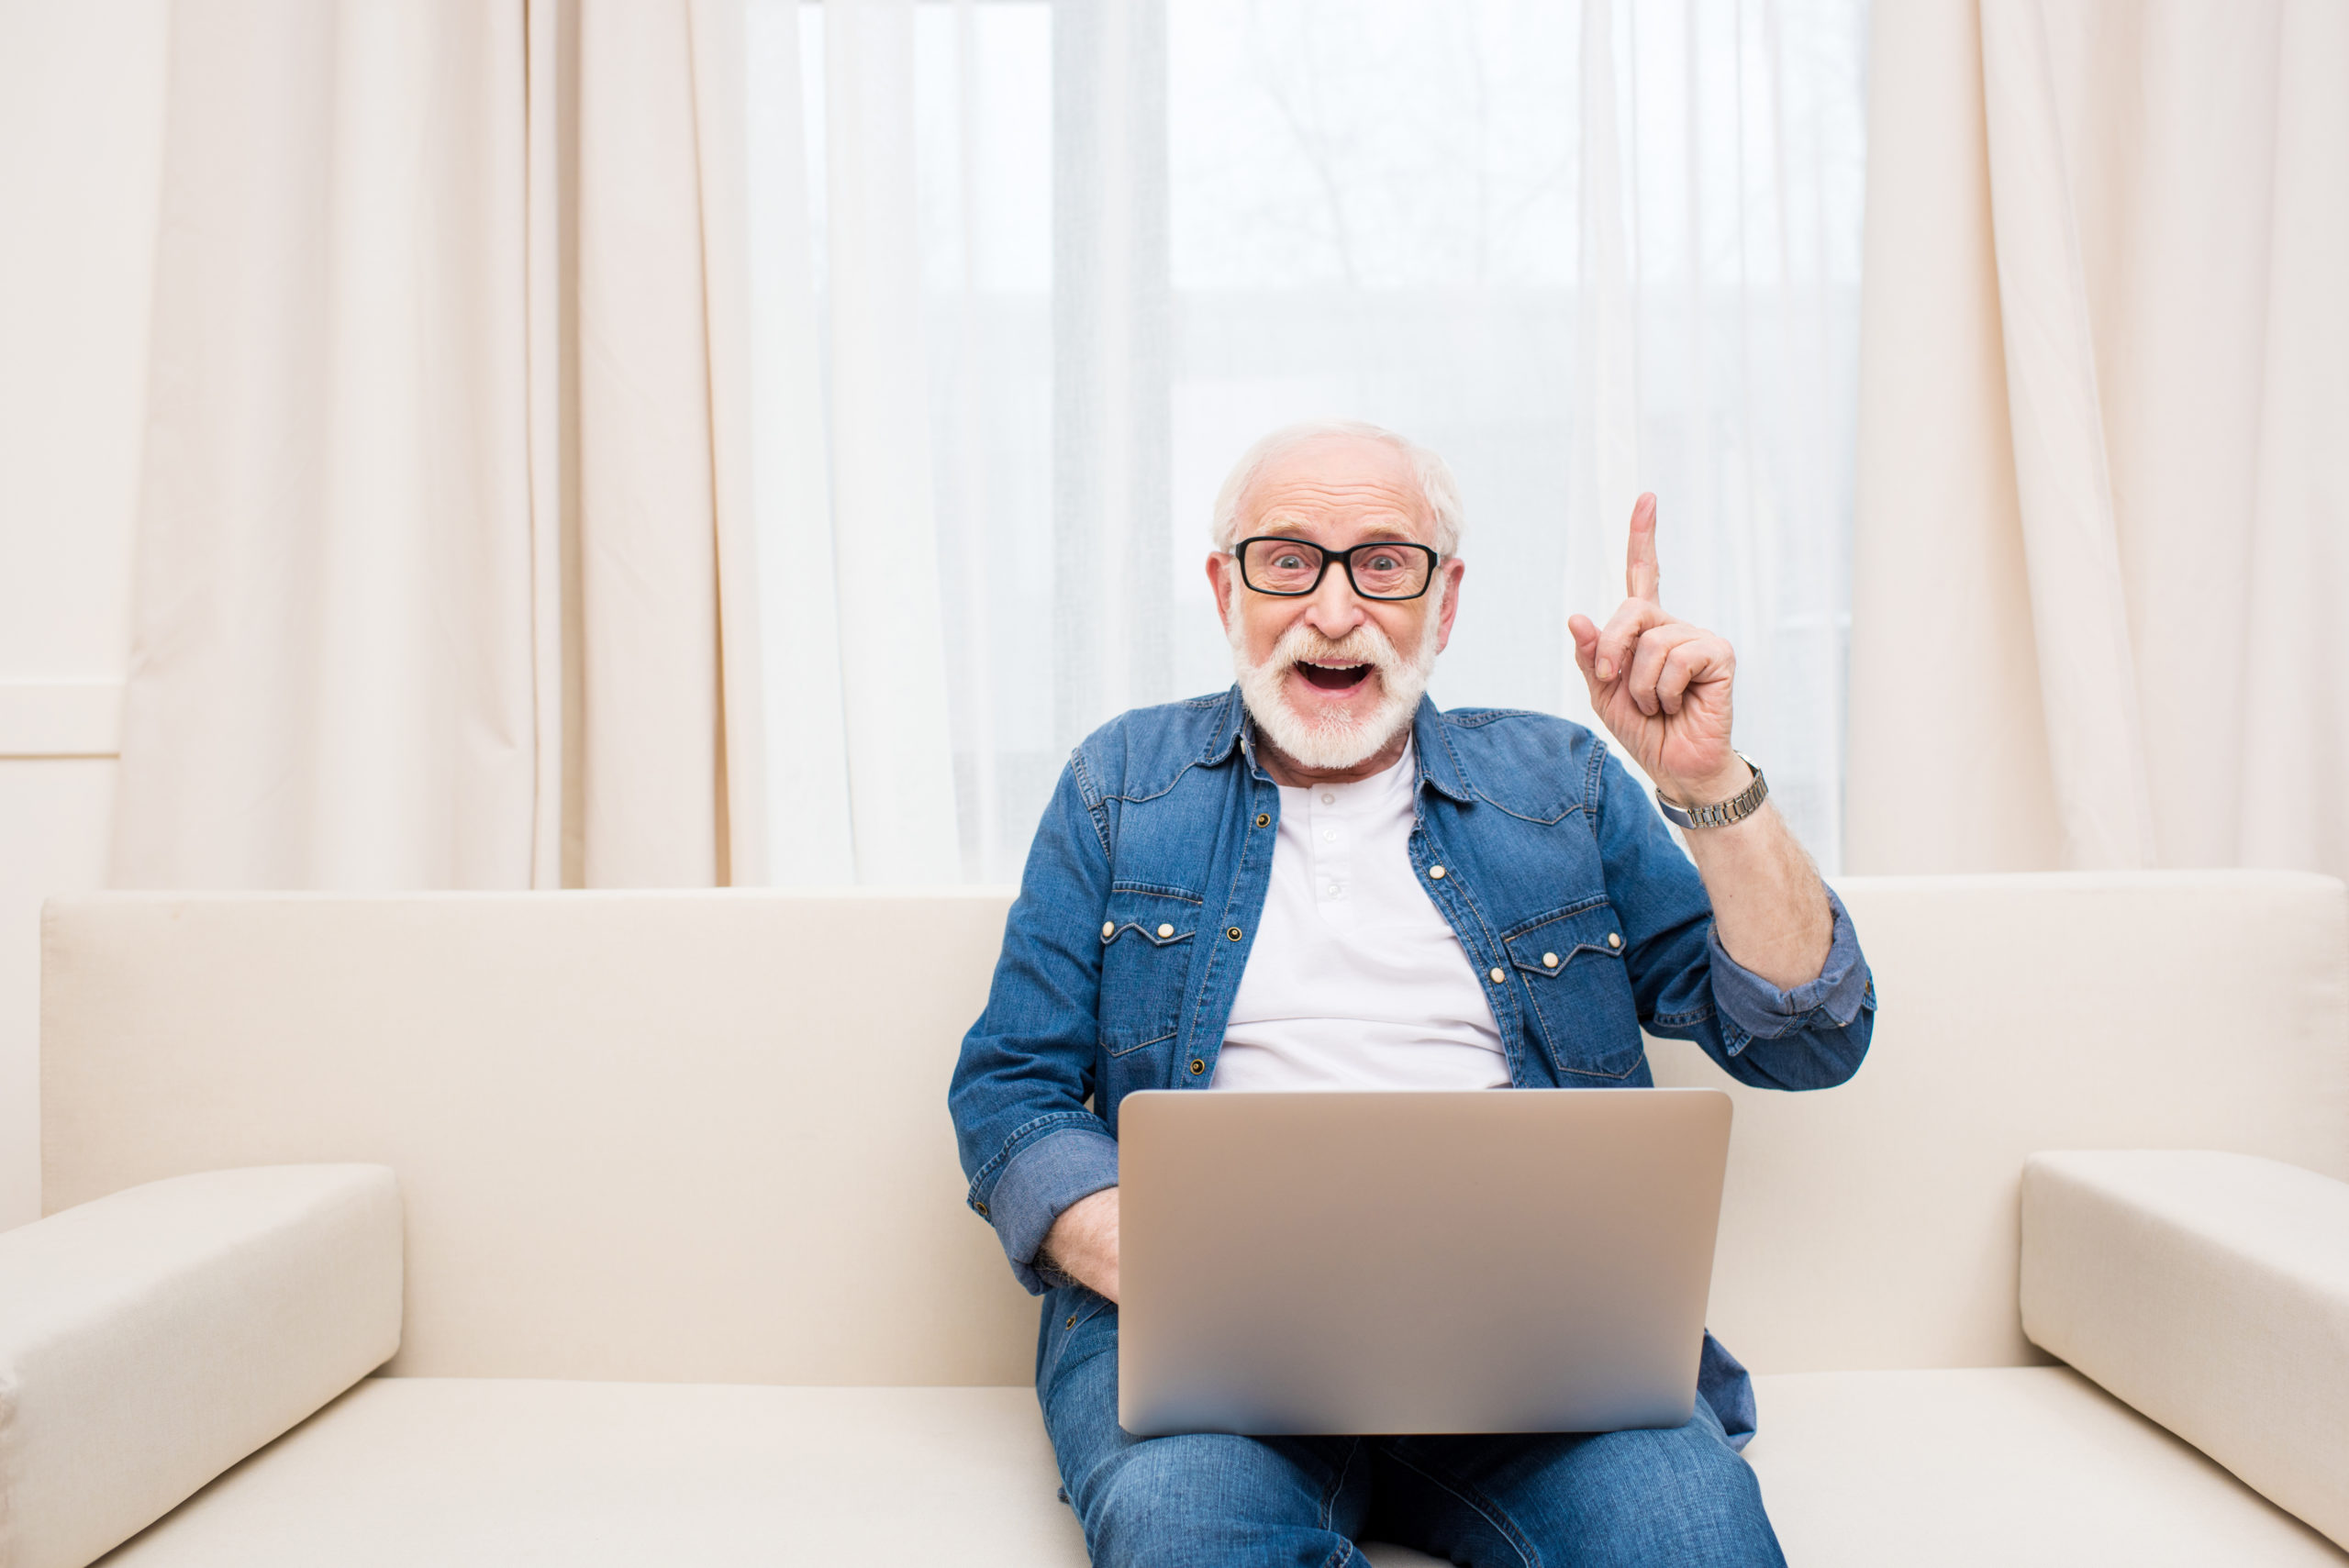 Smiling senior man using laptop and pointing up with finger